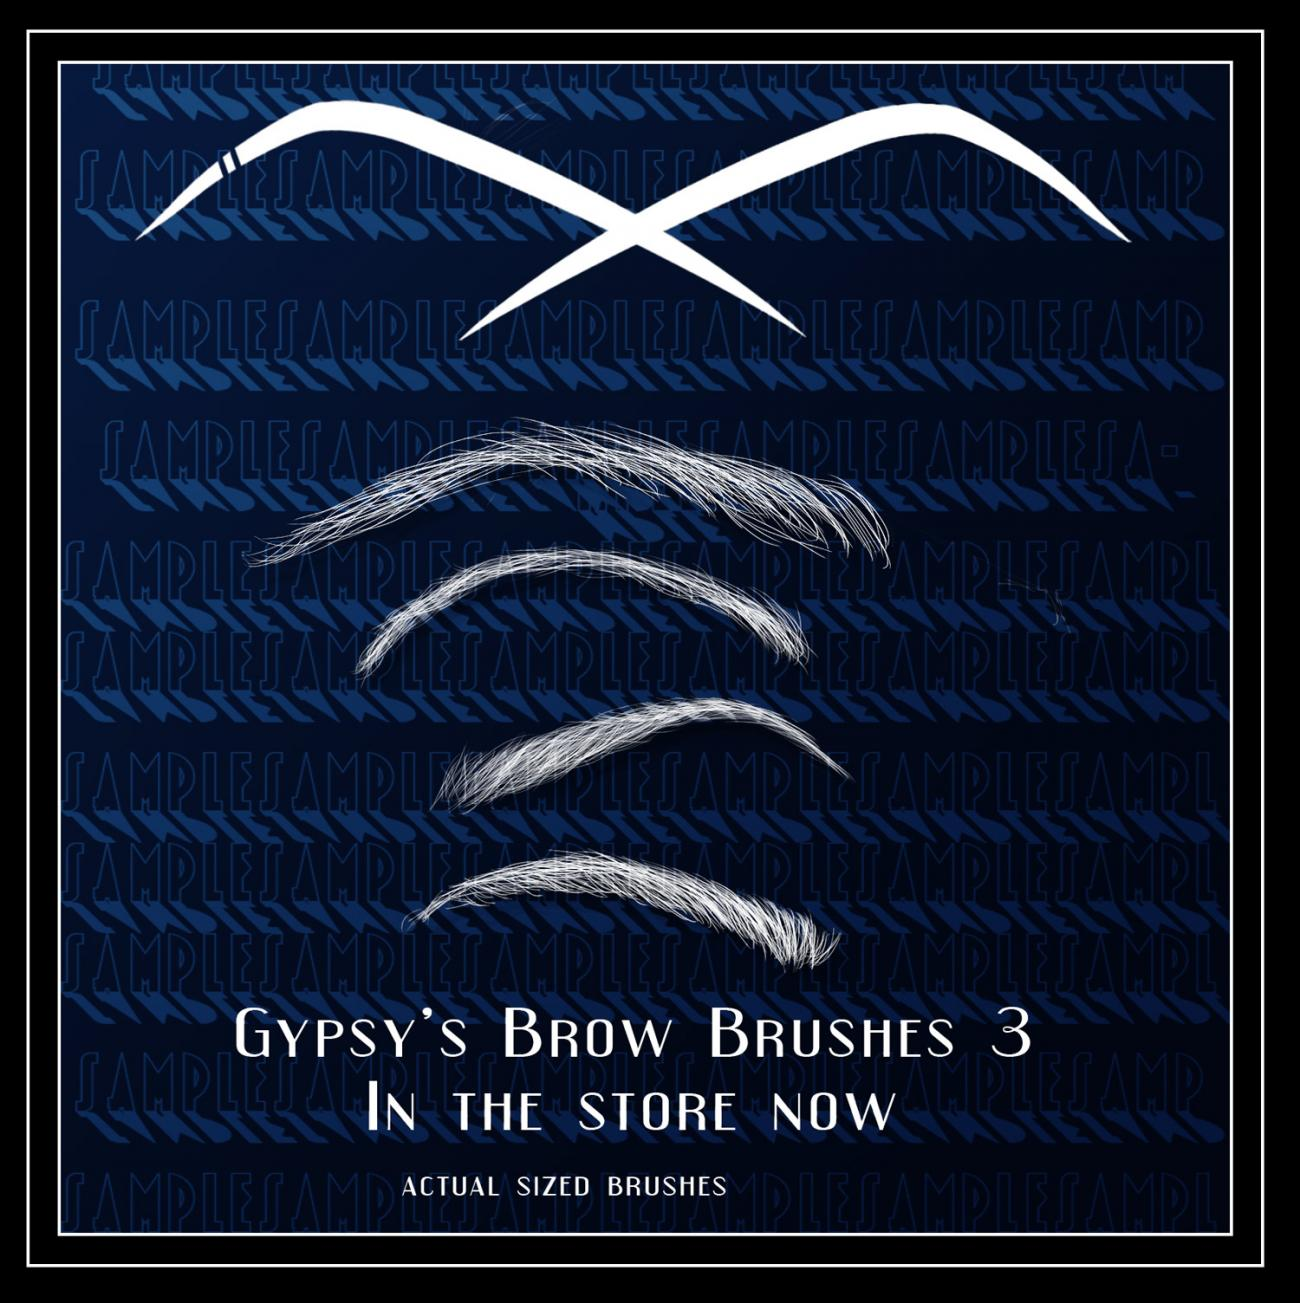 Gypsy Brows III: Son Of Brow Brushes